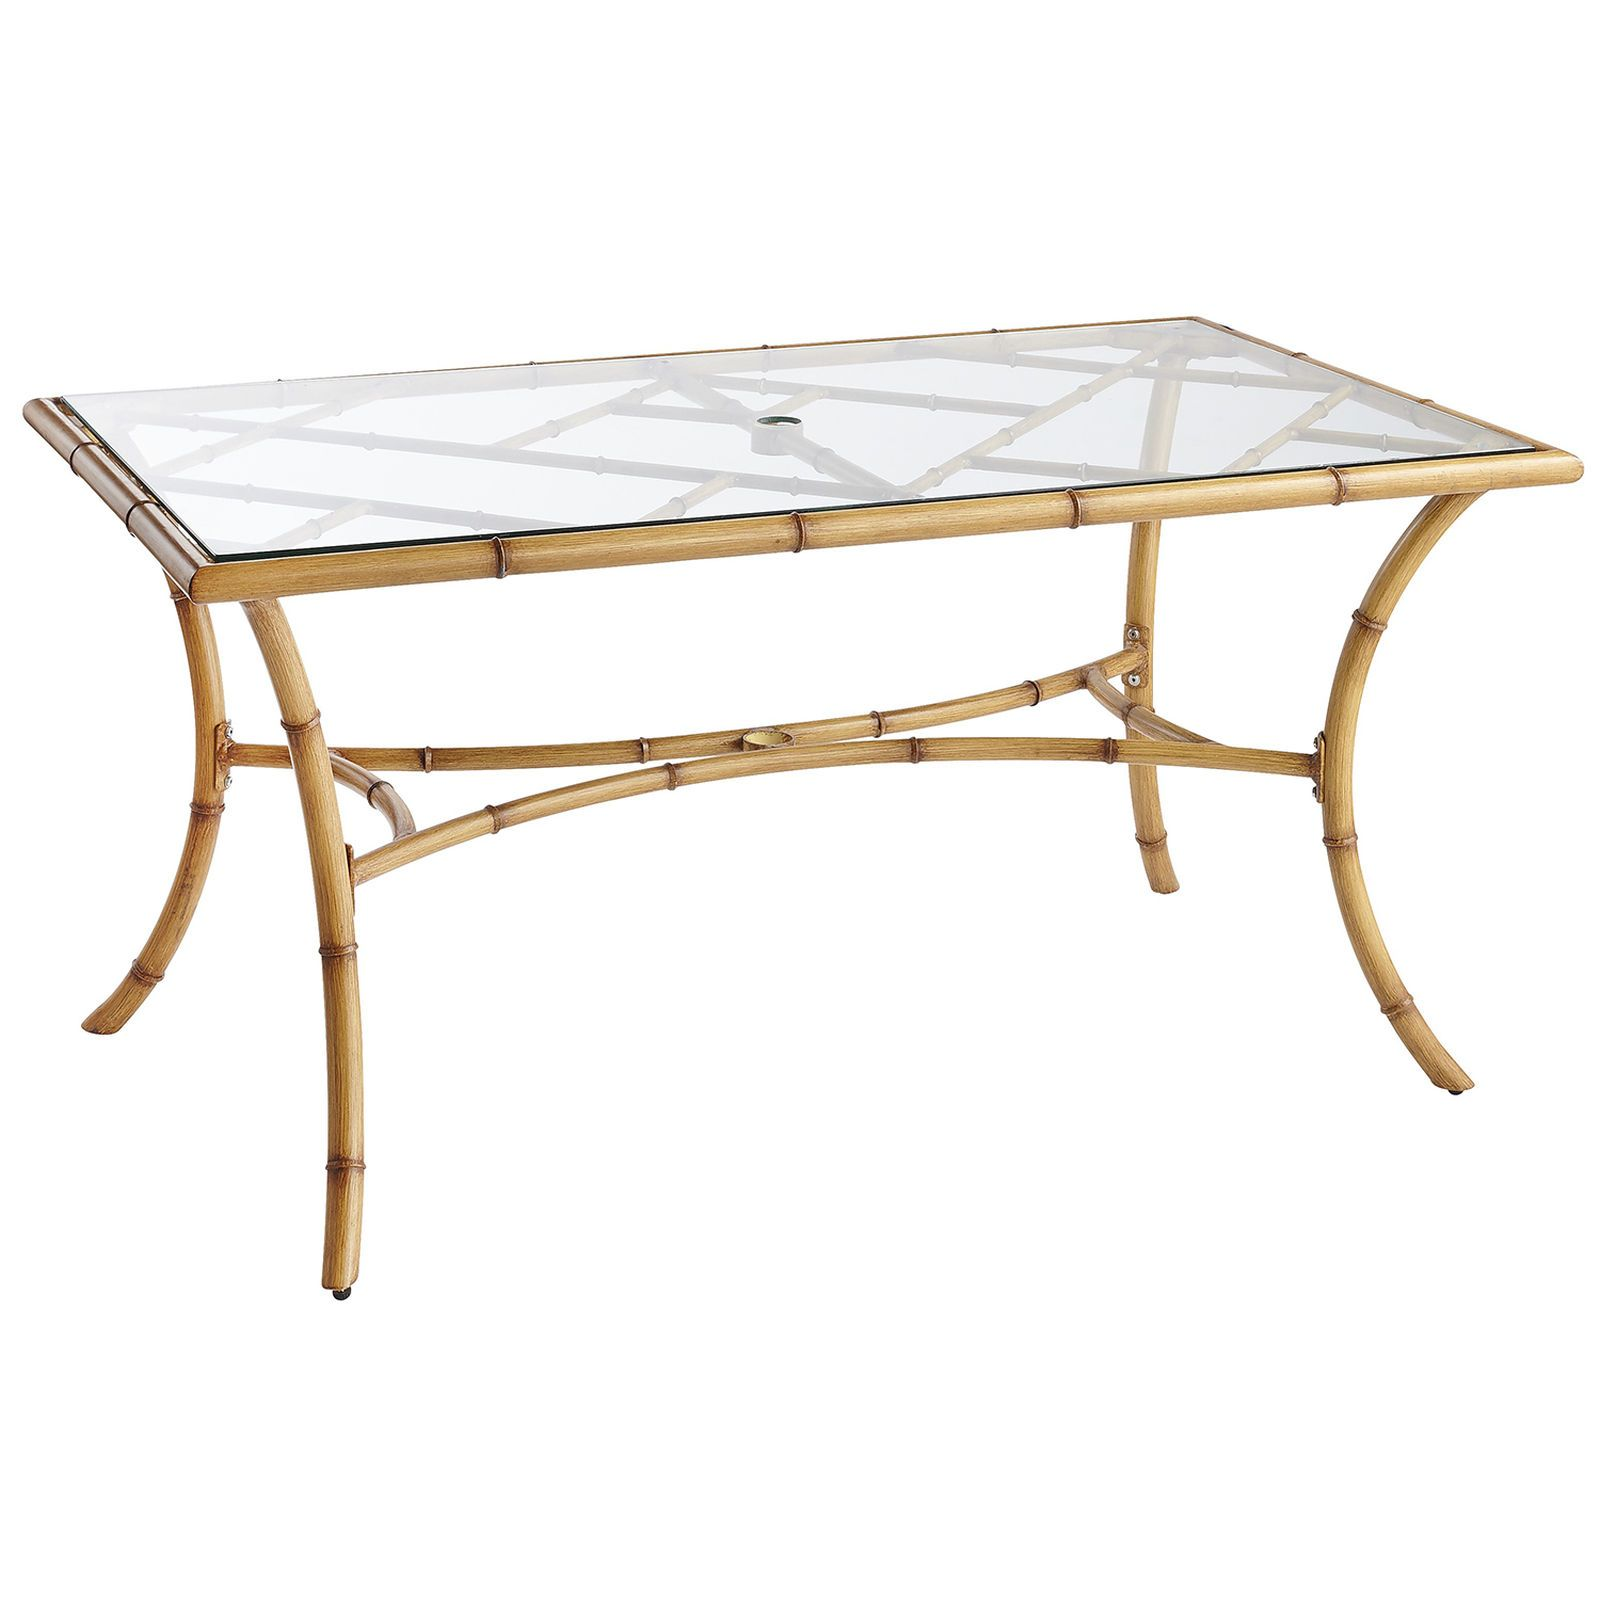 bayan dining table | pier 1 imports | outdoor furniture, Esstisch ideennn